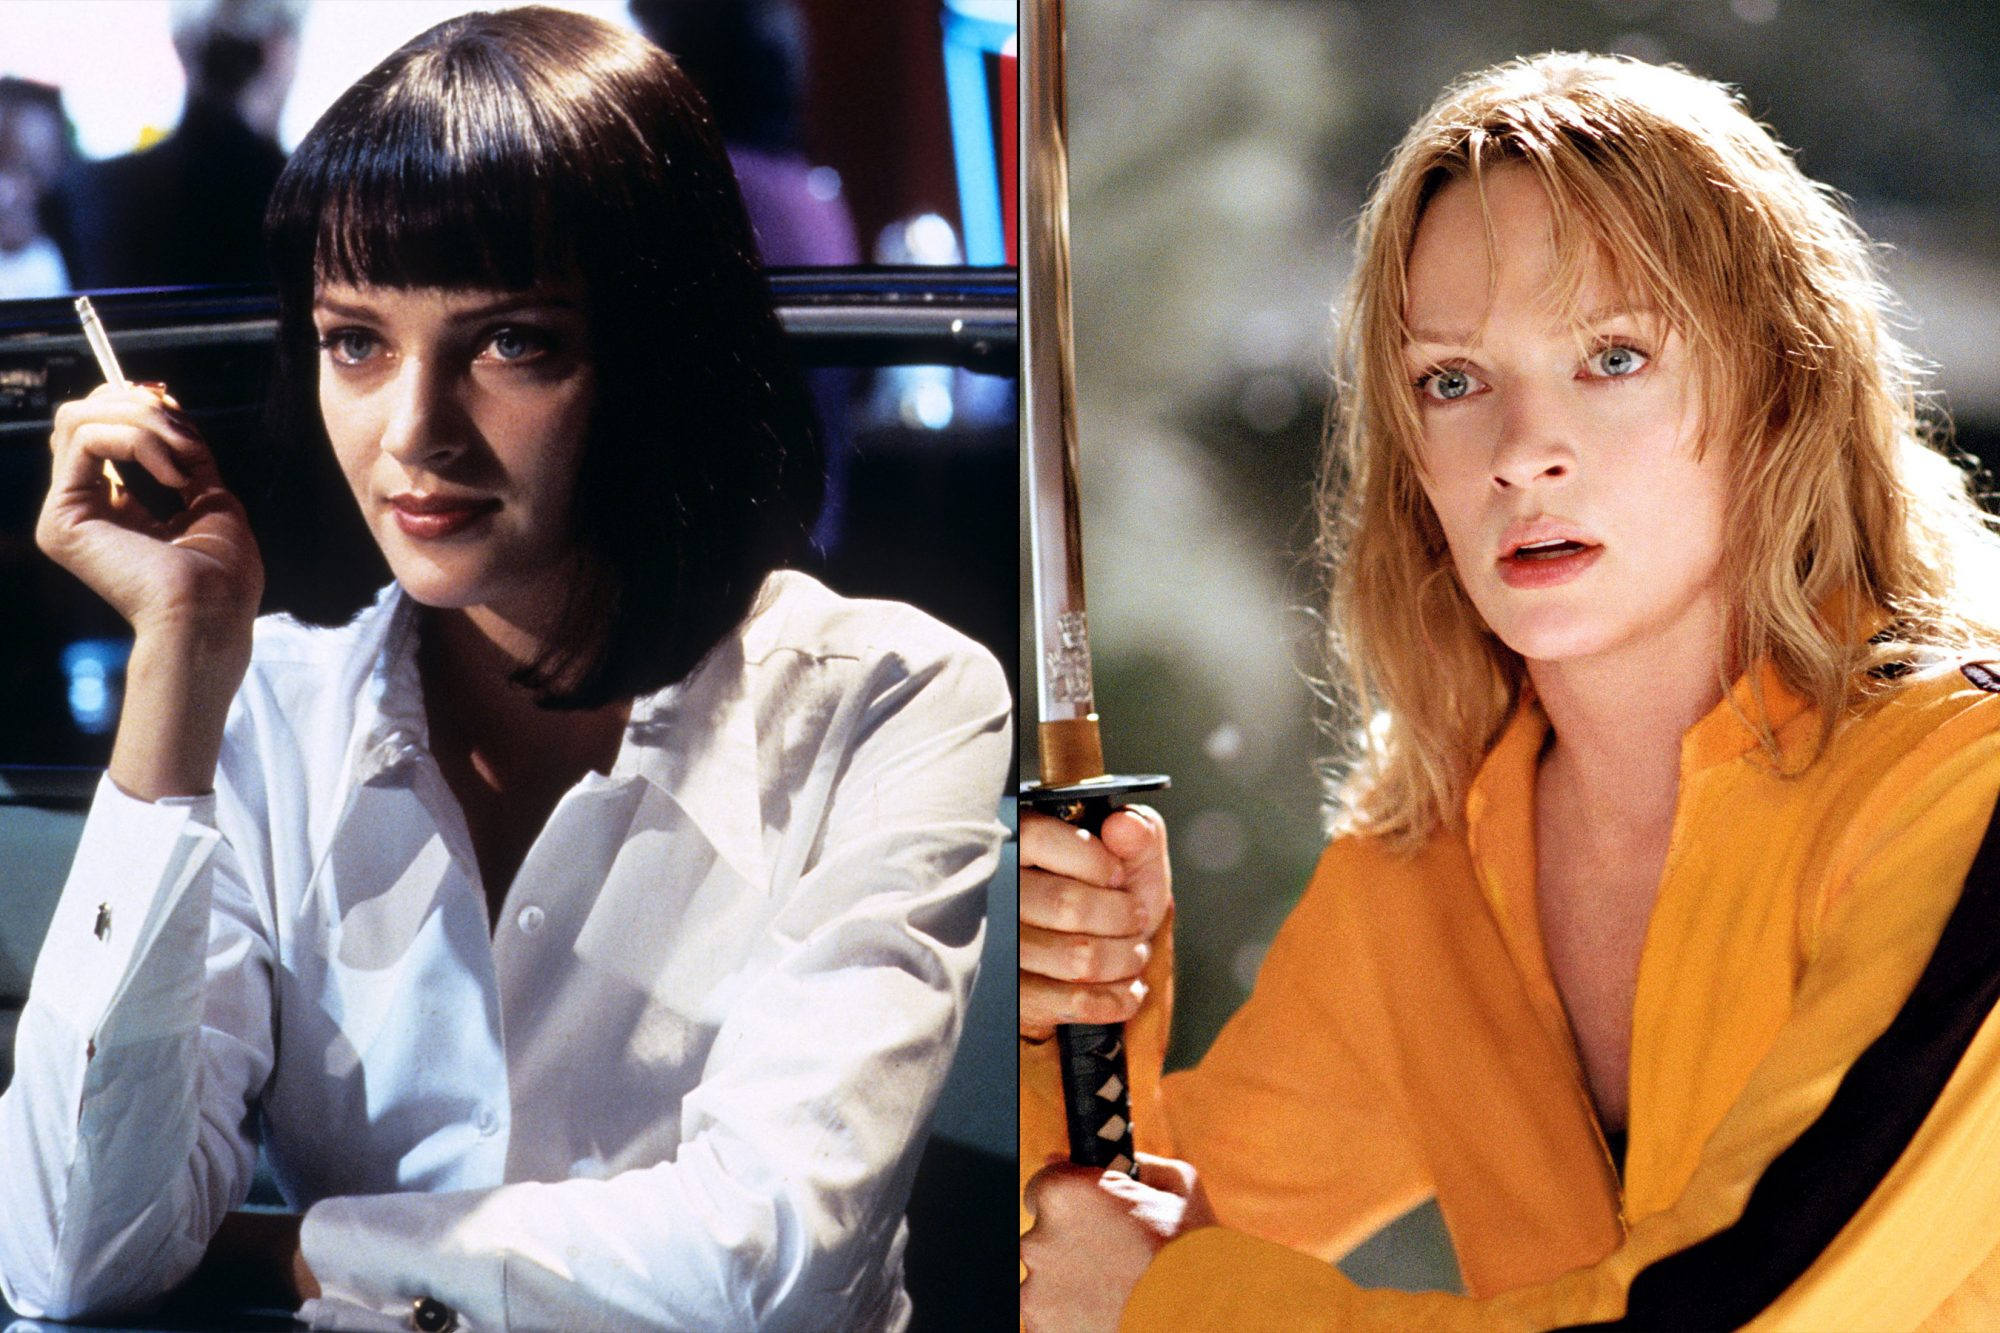 2. Uma Thurman (Pulp Fiction, Kill Bill: Volume 1, Kill Bill: Volume 2)